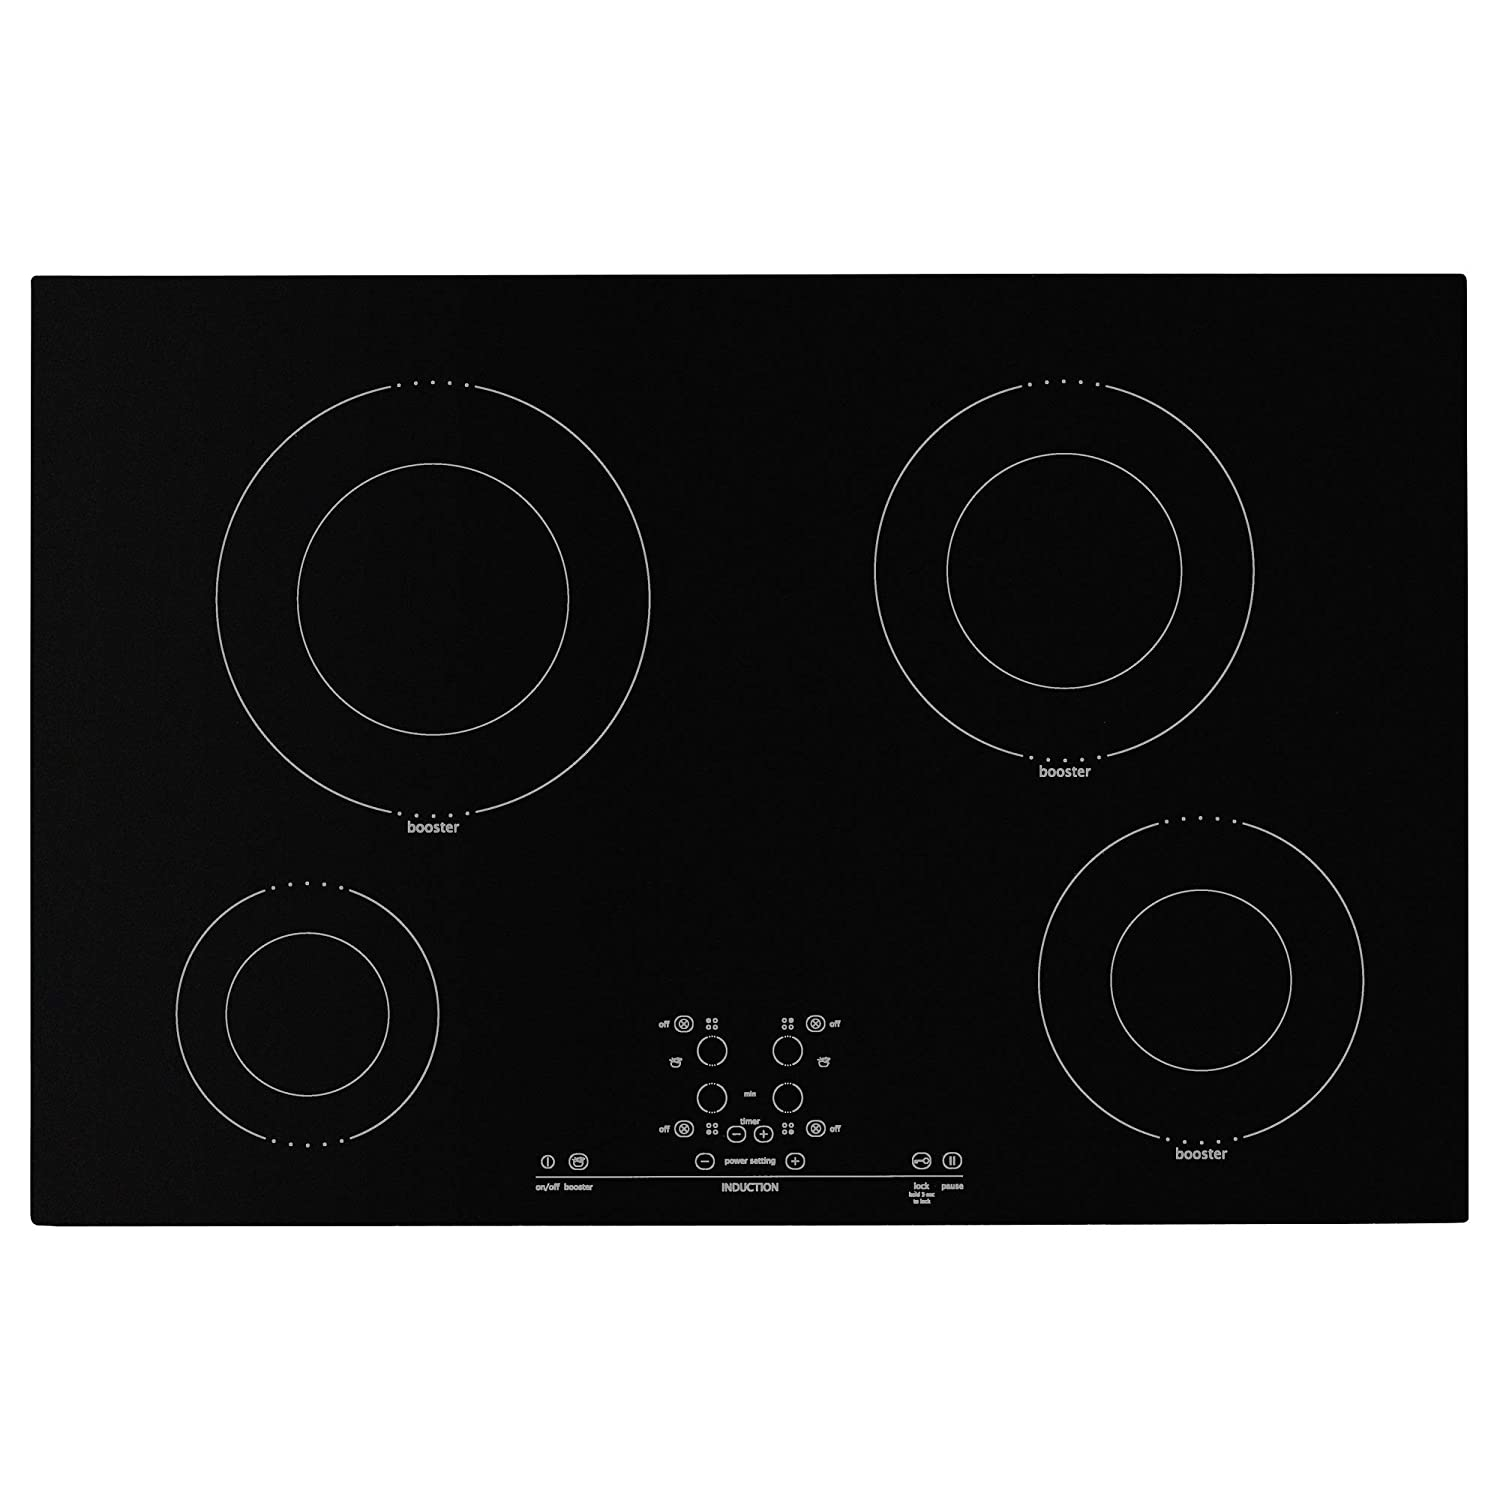 IKEA. Nutid 4 Element Induction Cooktop, Black